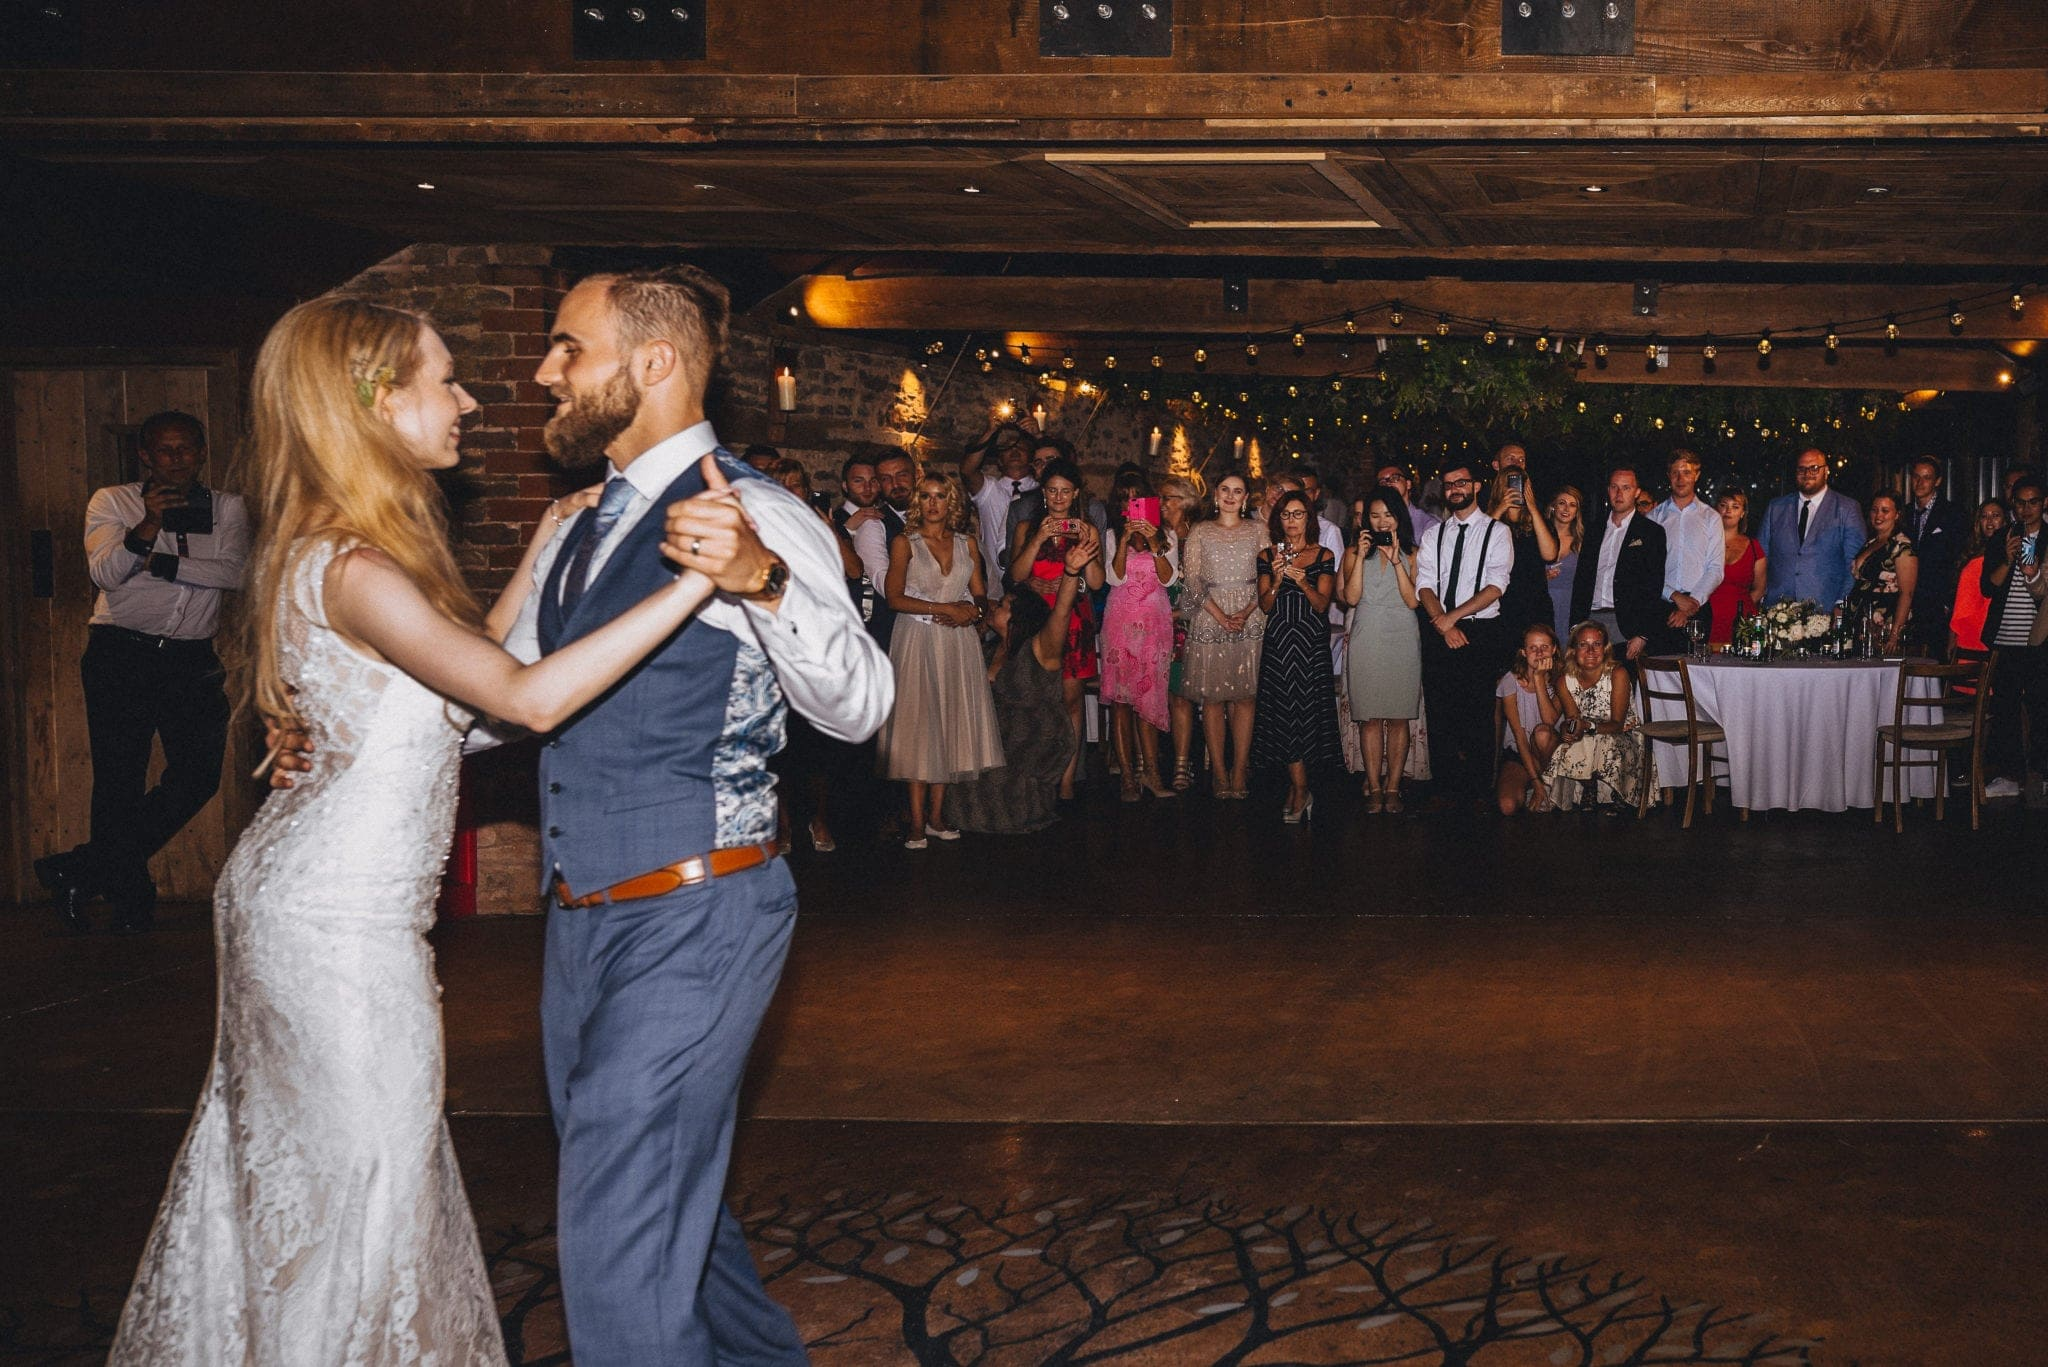 Bride and groom dance together as guests look on